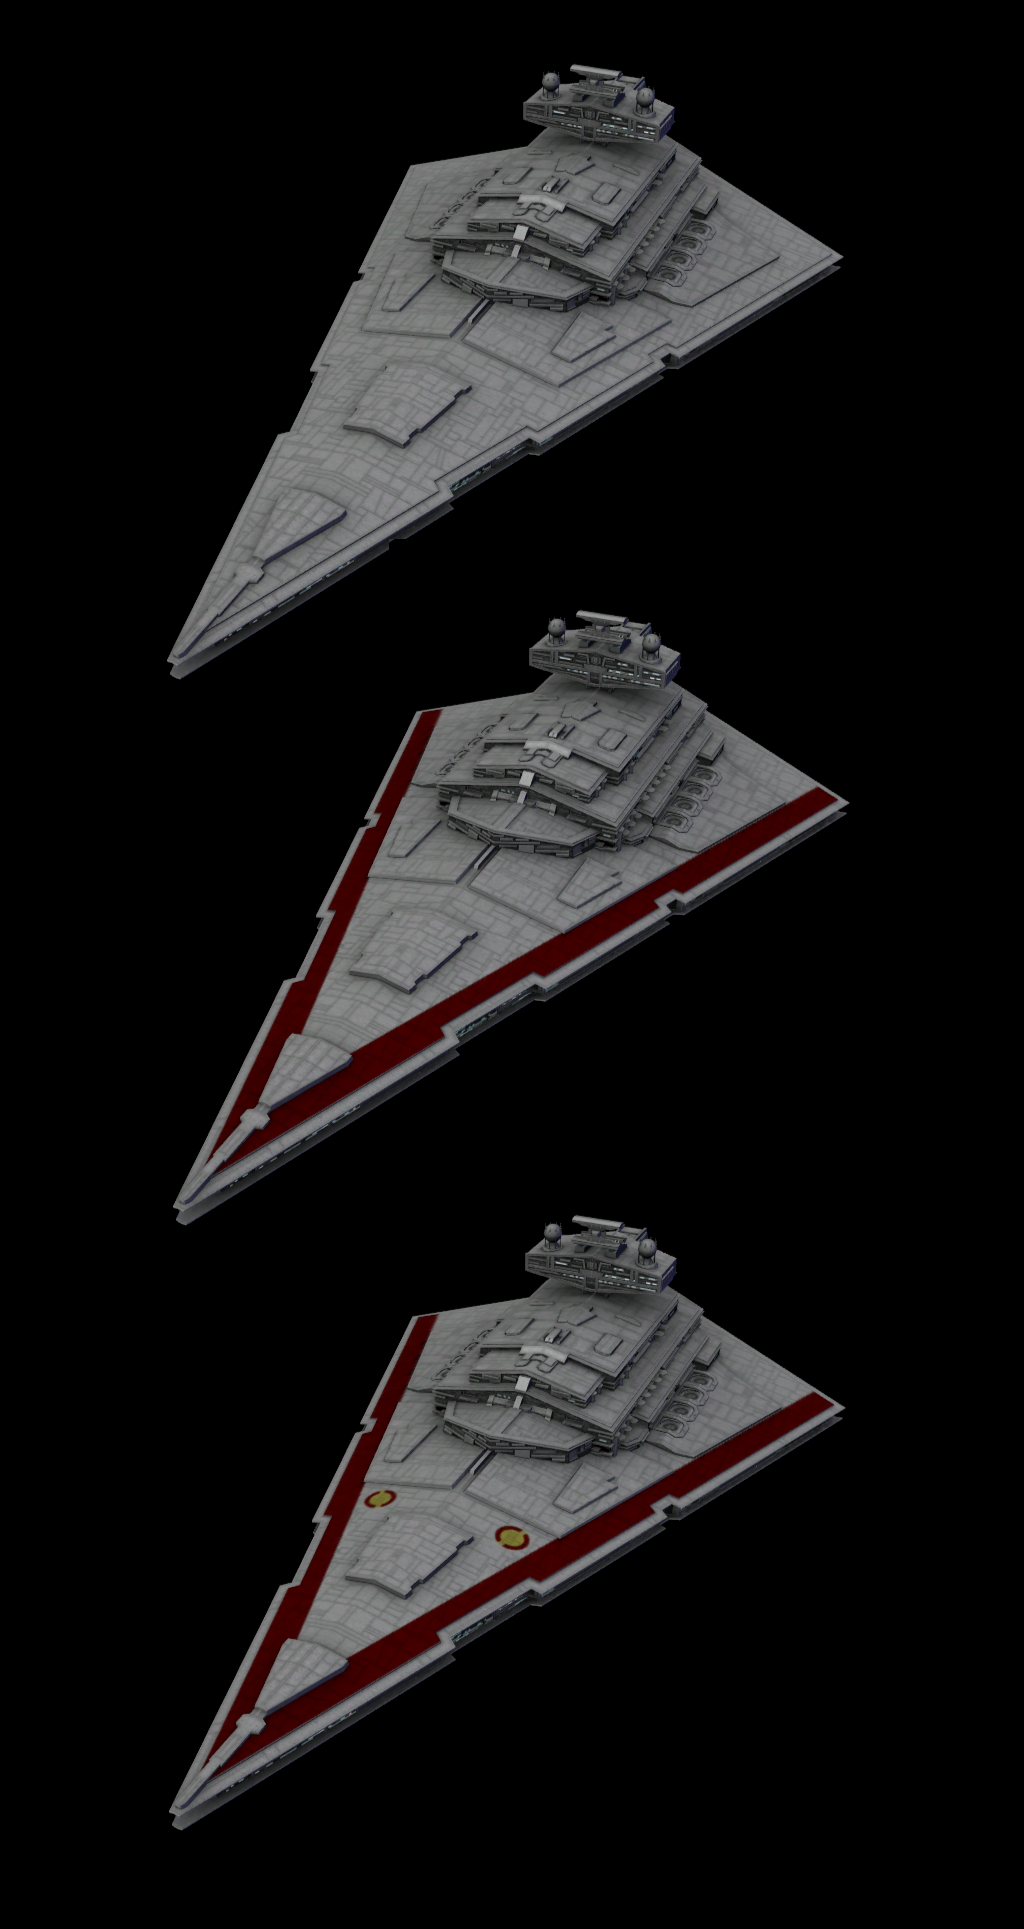 Republic Imperial Class Star Destroyer Star Wars Pictures Star Wars Ships Star Wars Vehicles